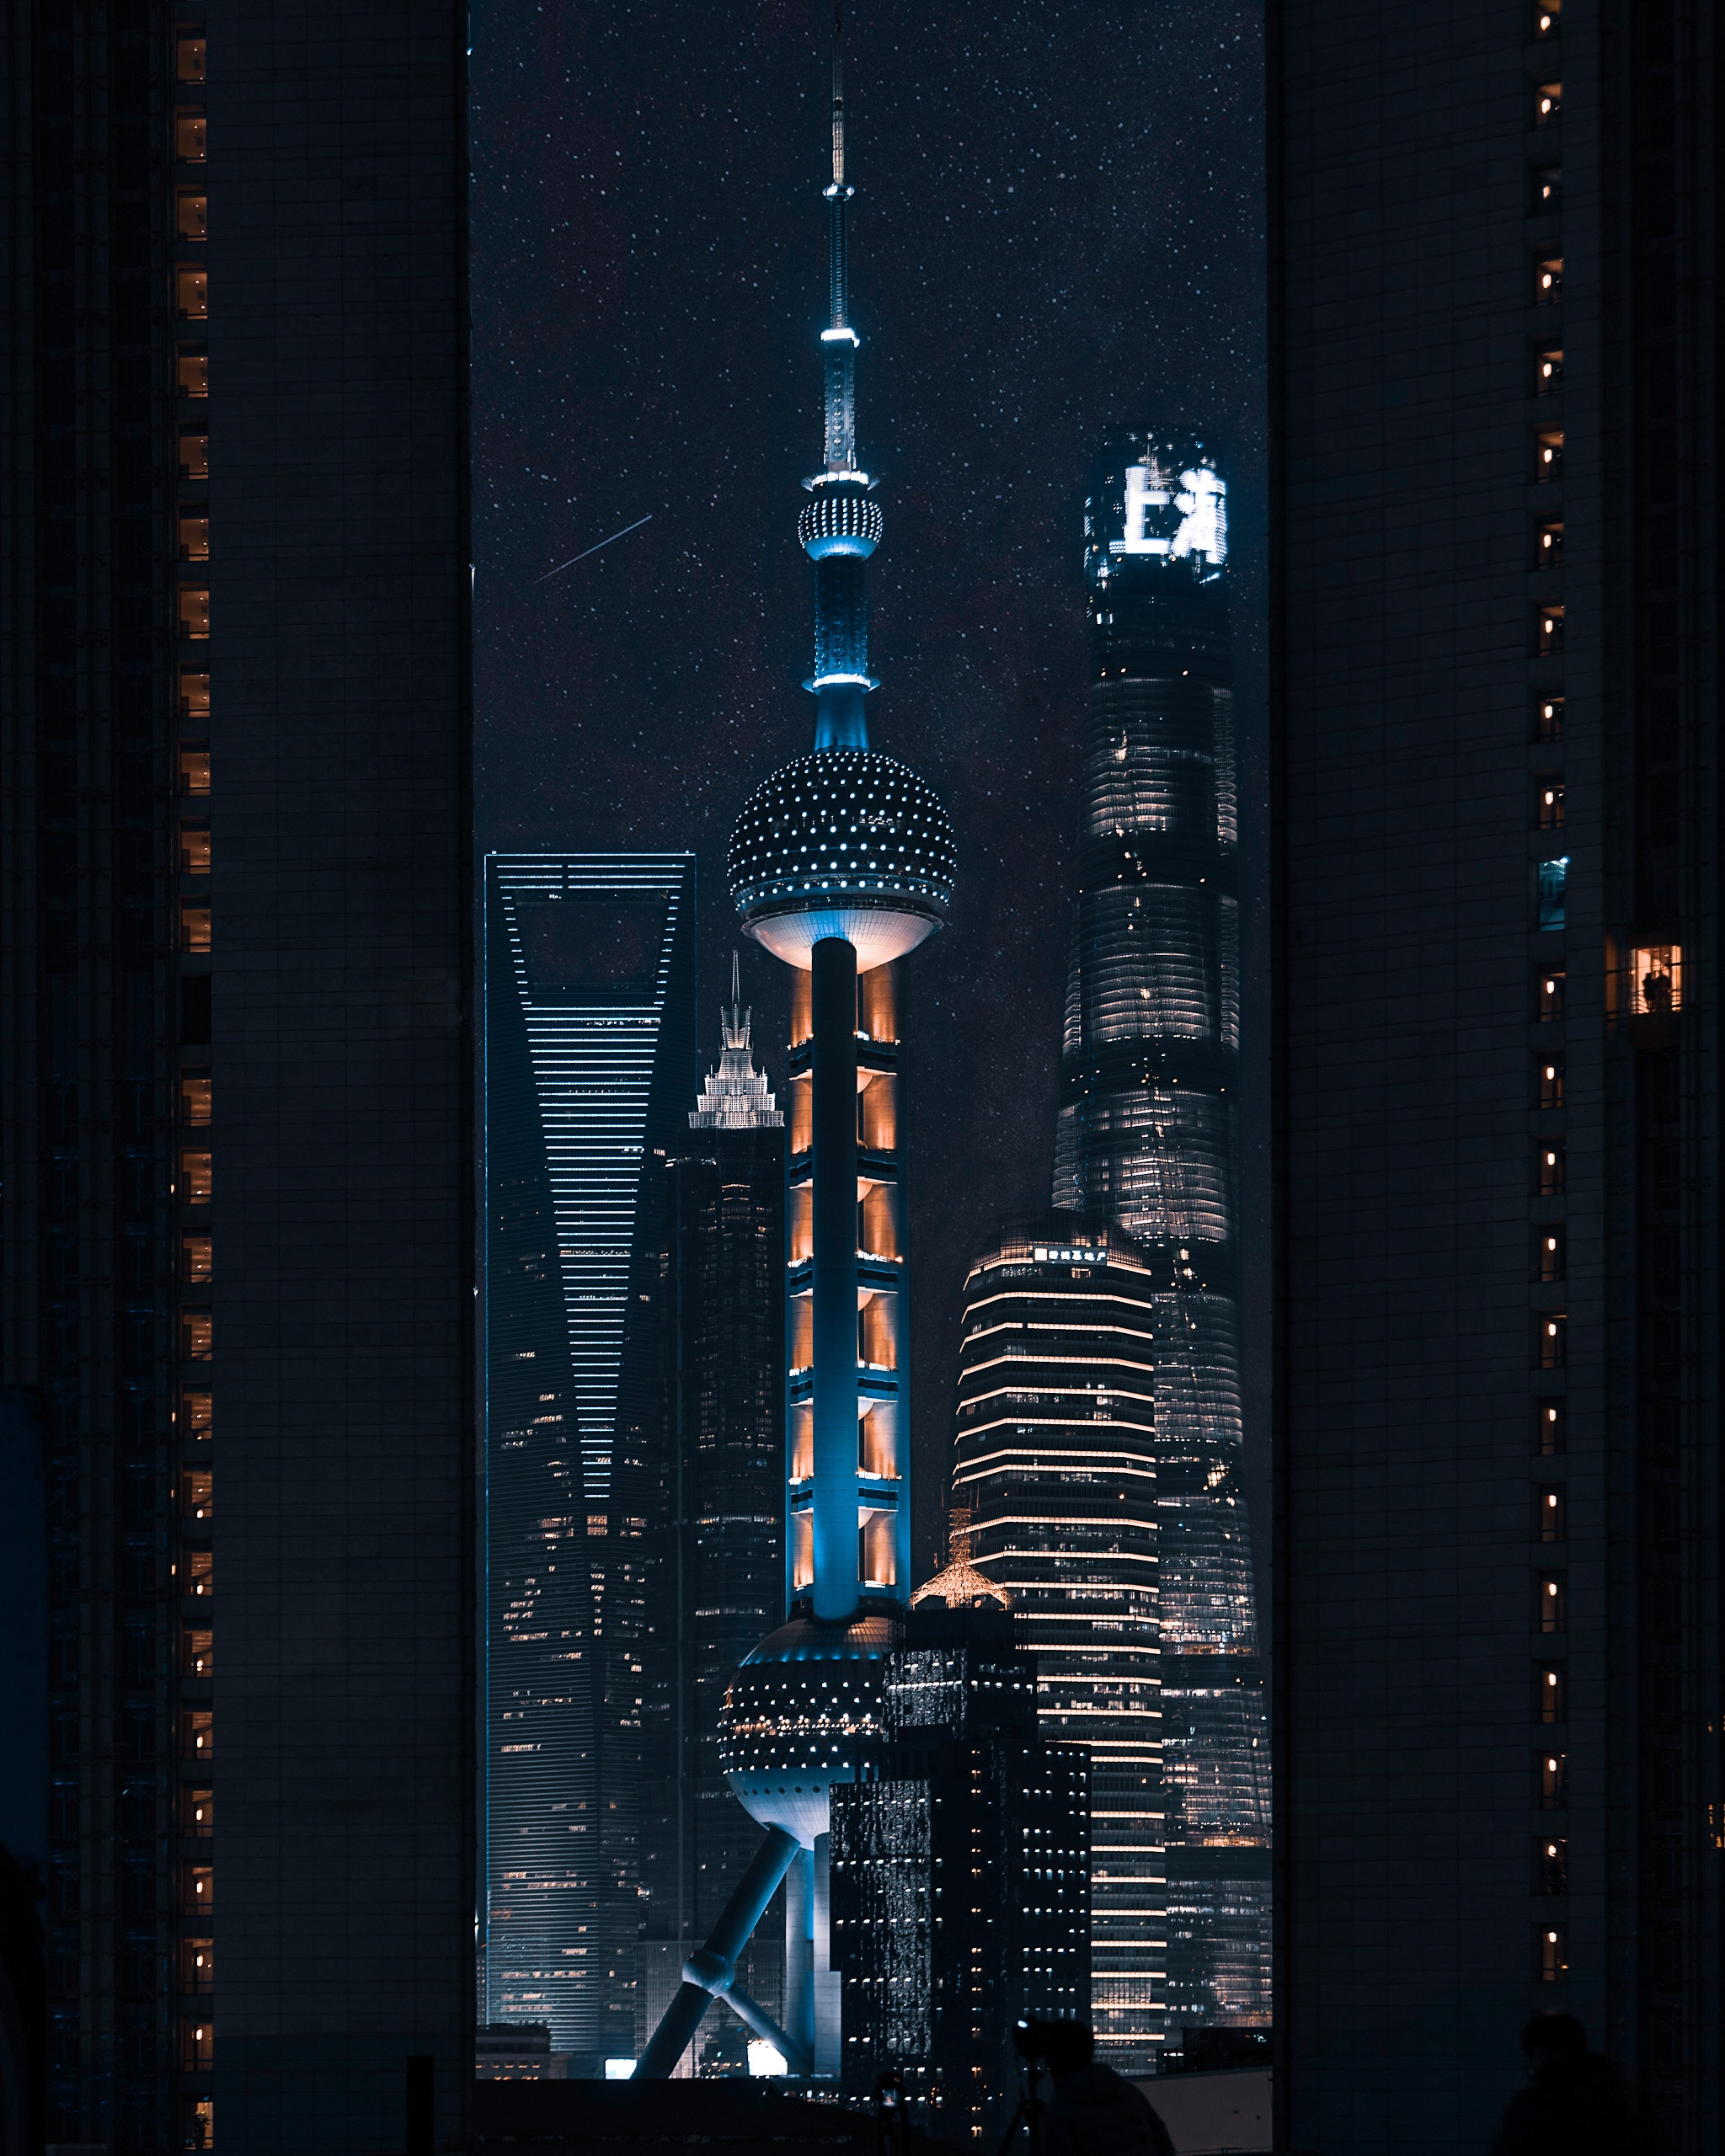 A lighted tower beside a building